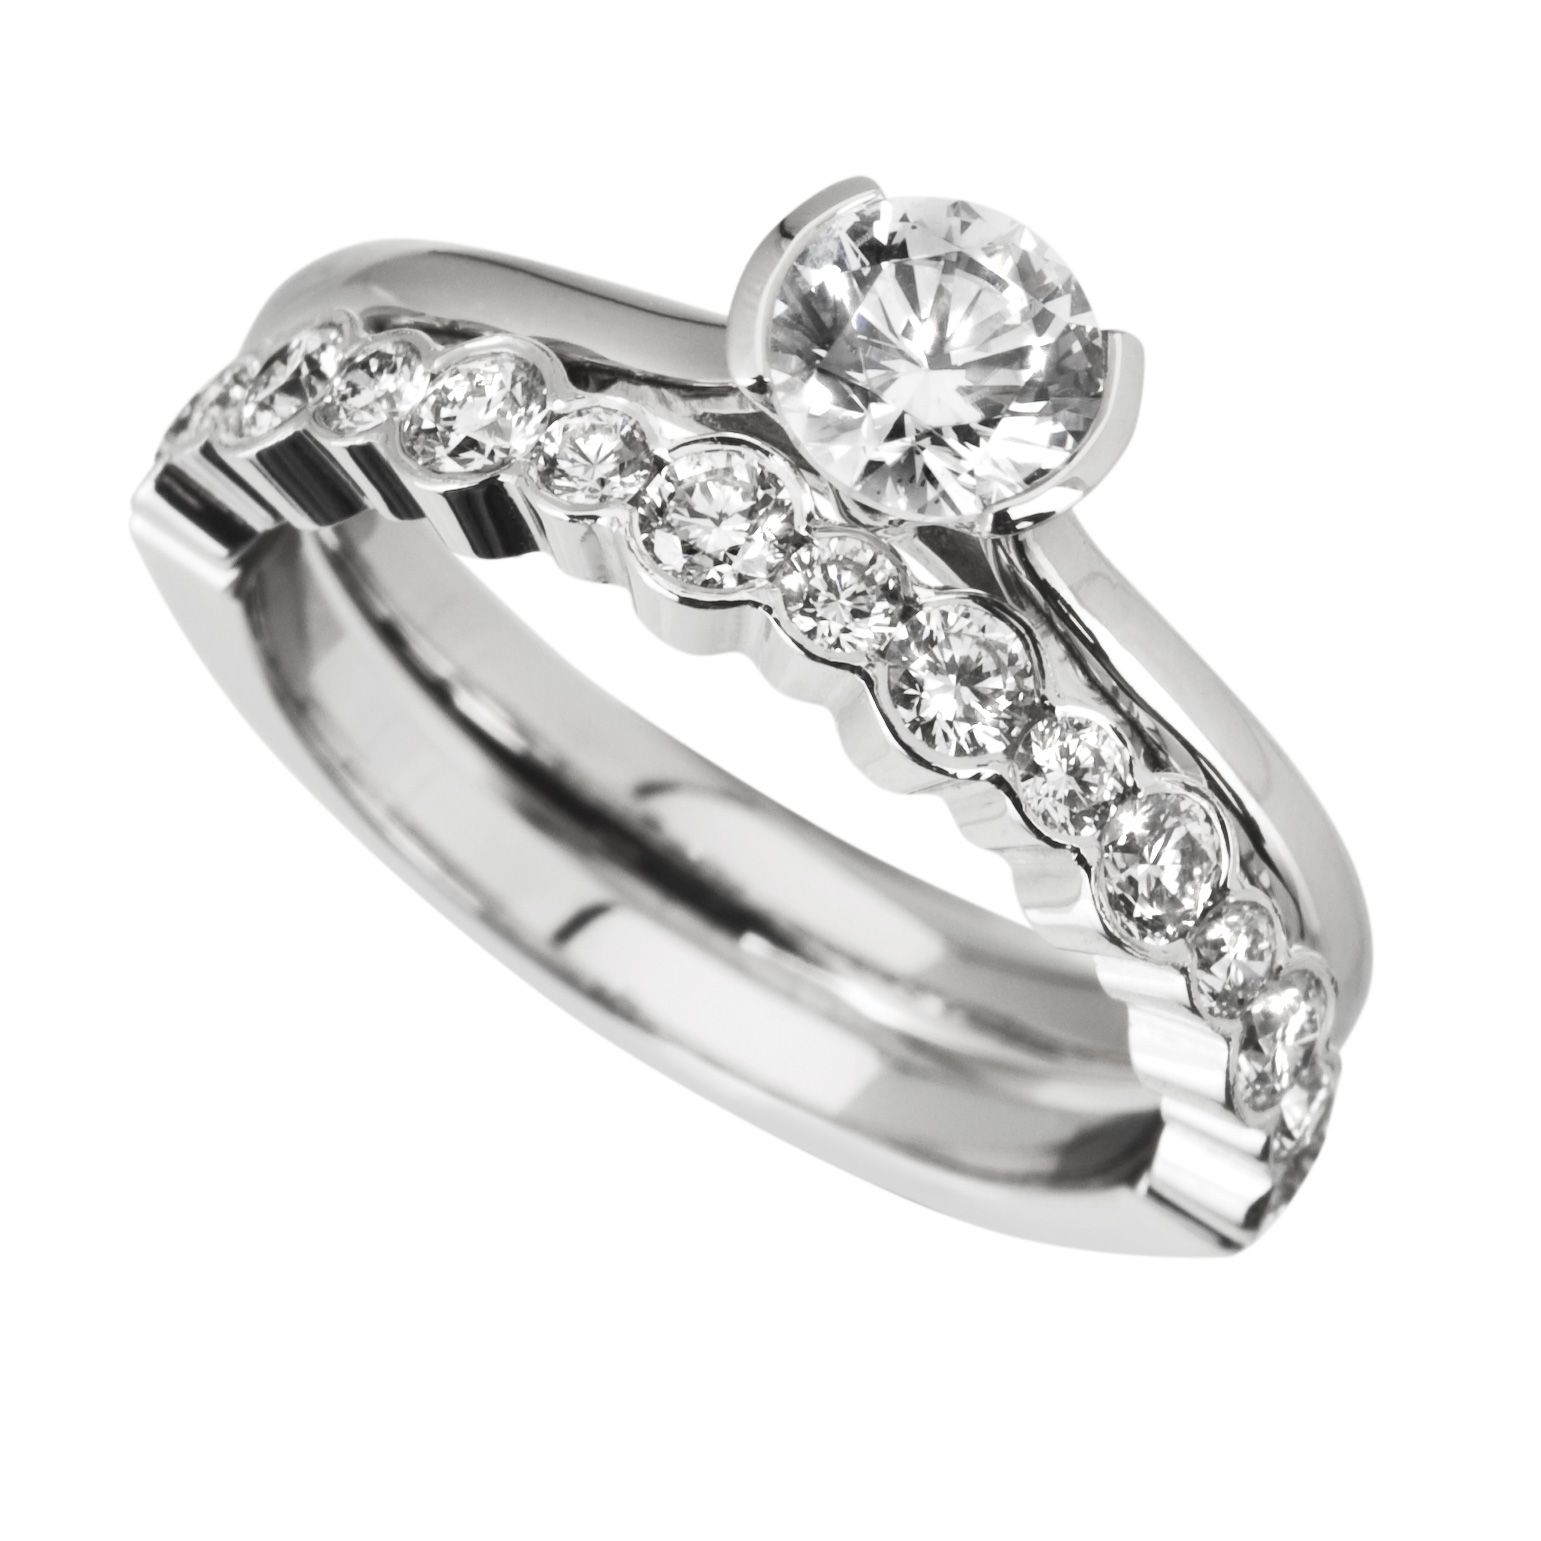 images of wedding rings sets |  rub over engagement ring with